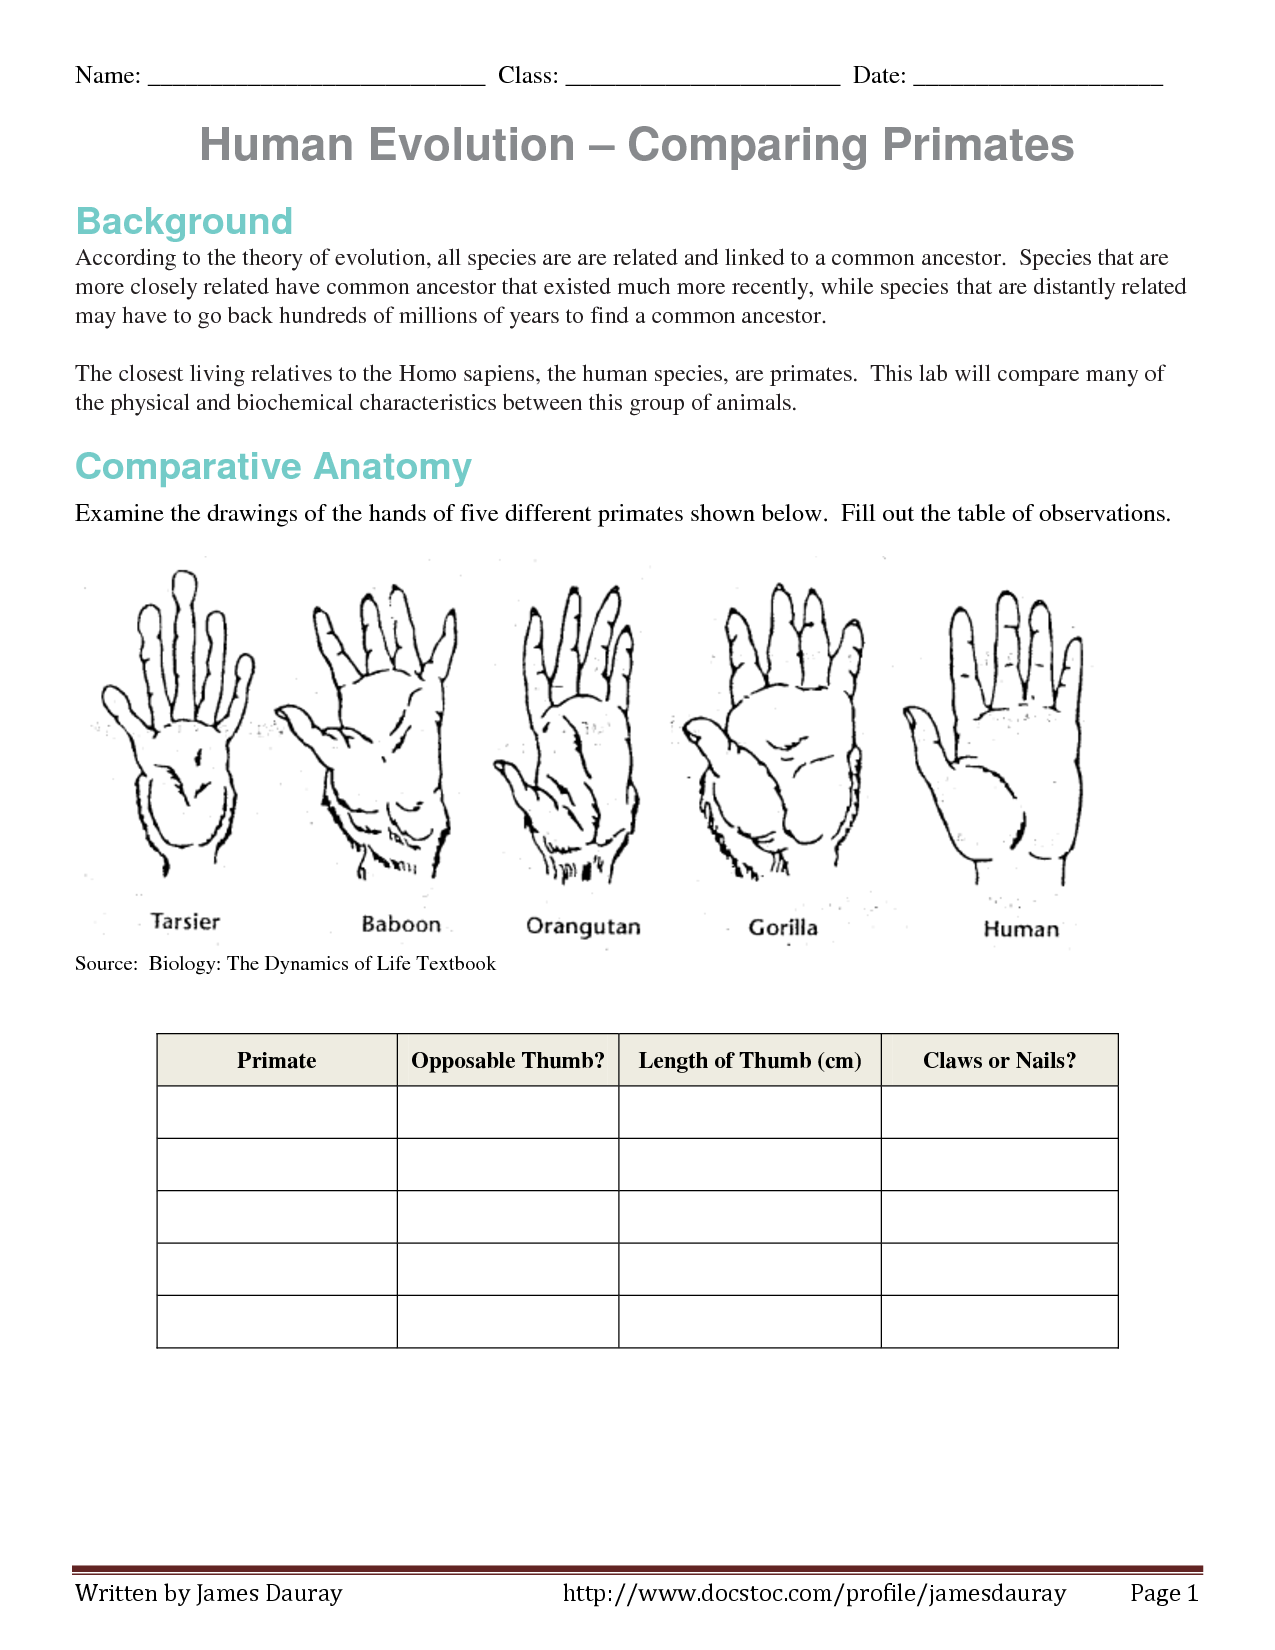 evolution of human thumb | Evidence of Human Evolution Worksheet ...